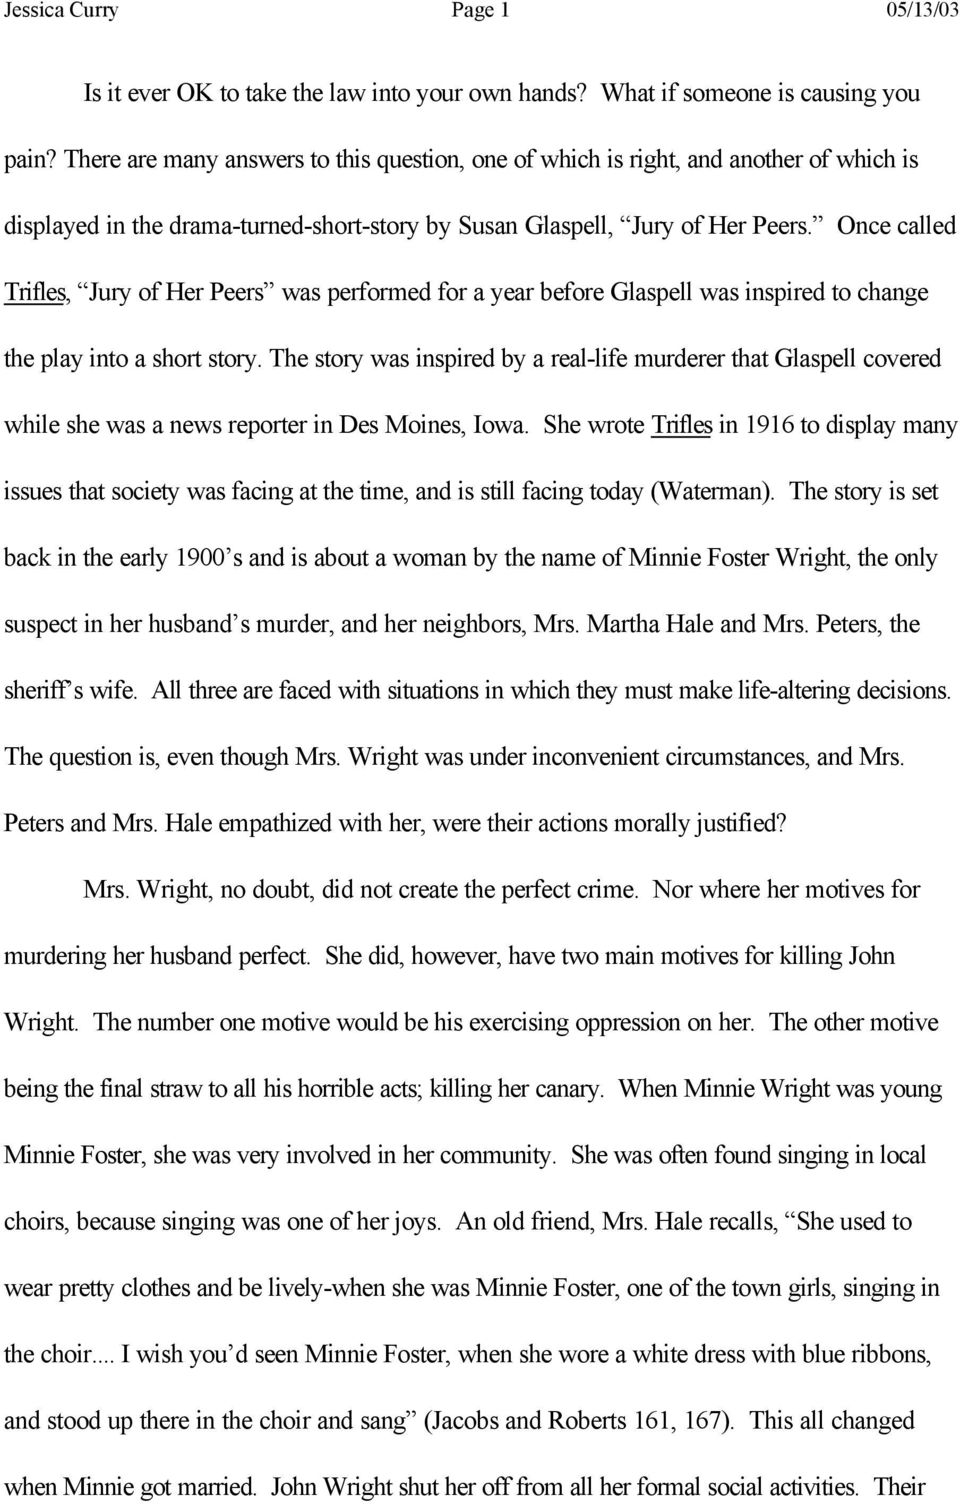 Plot Summary of Trifles by Susan Glaspell